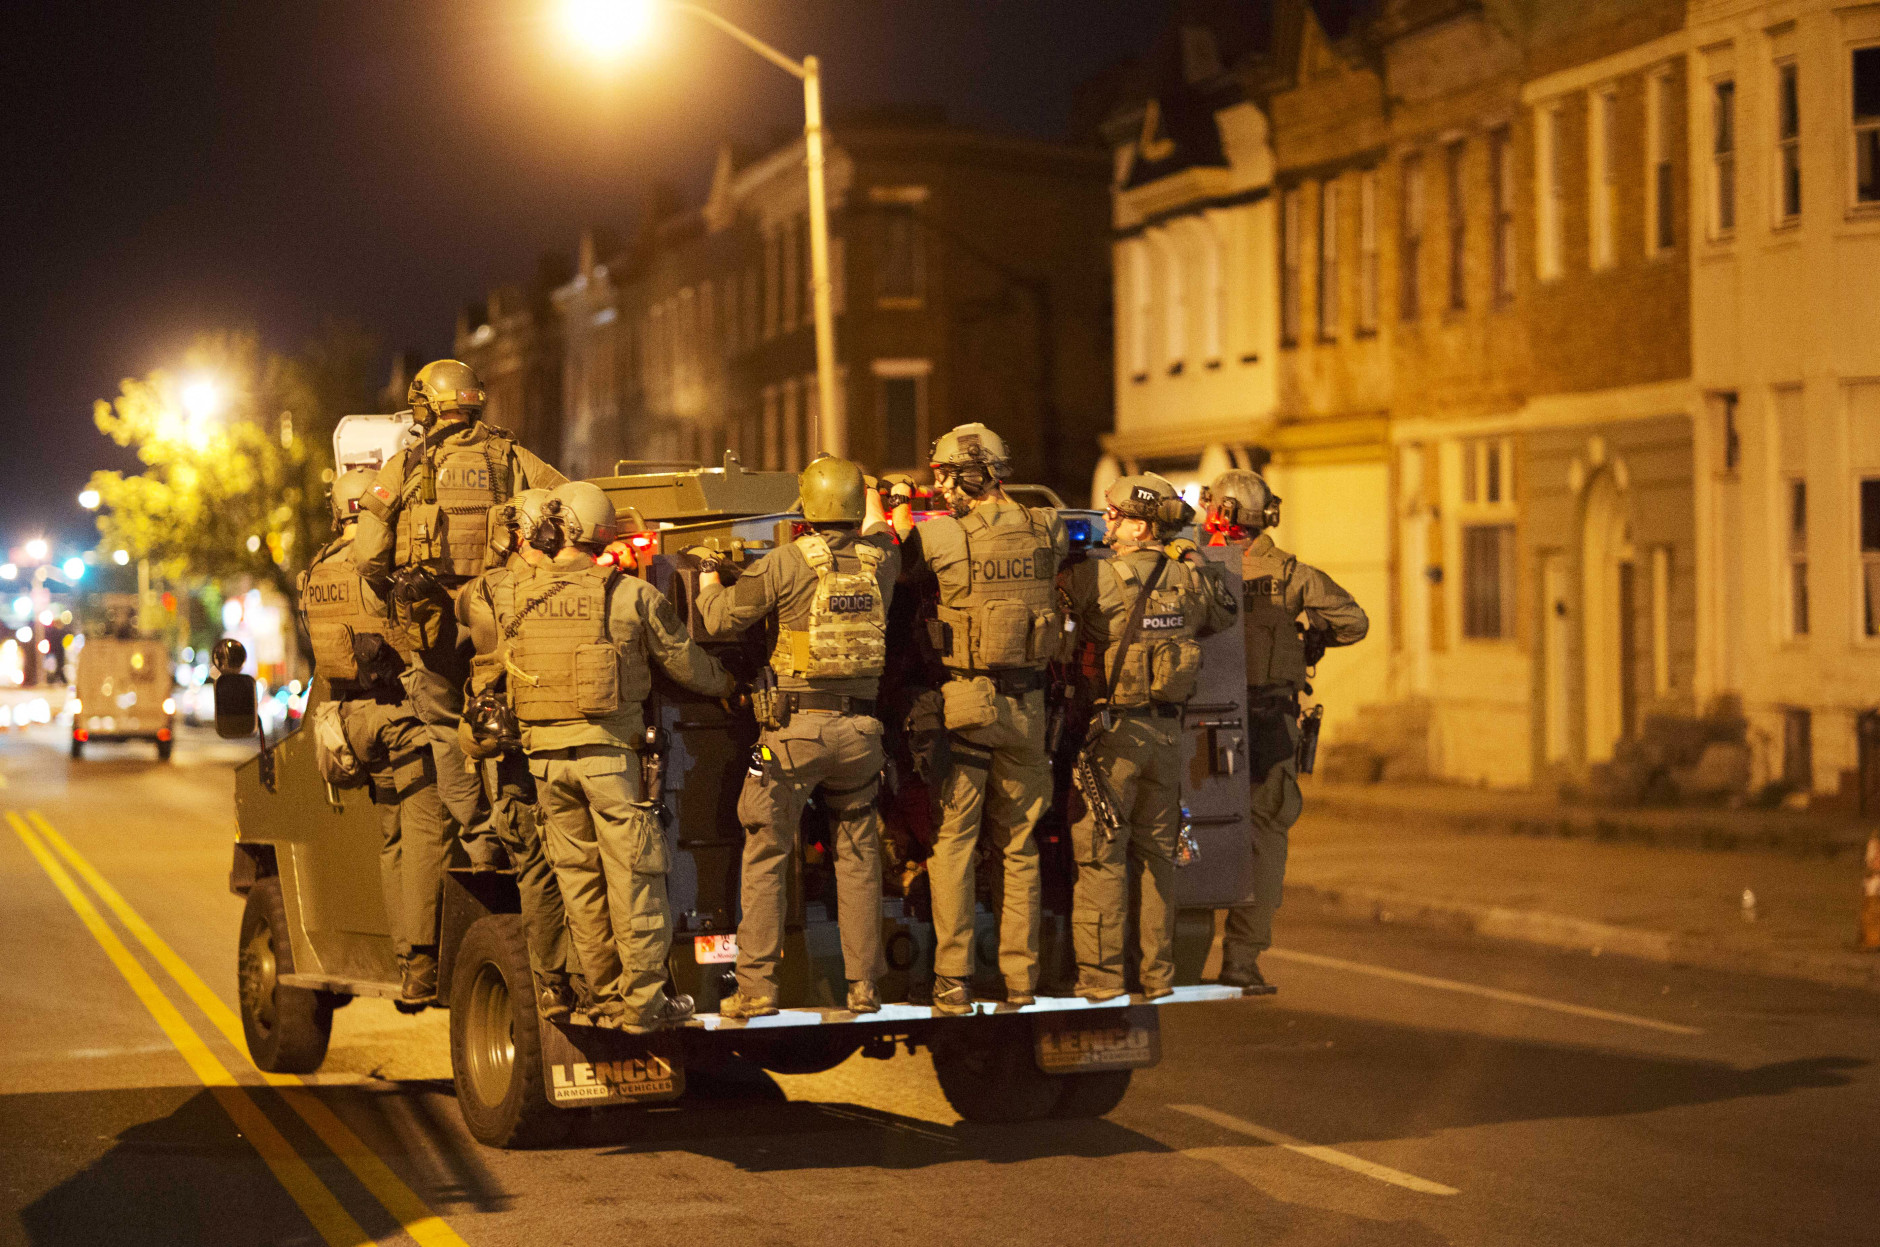 Police ride on an armored vehicle through the area where Monday's riots occurred following the funeral for Freddie Gray, after a 10 p.m. curfew went into effect, Tuesday, April 28, 2015, in Baltimore. (AP Photo/David Goldman)